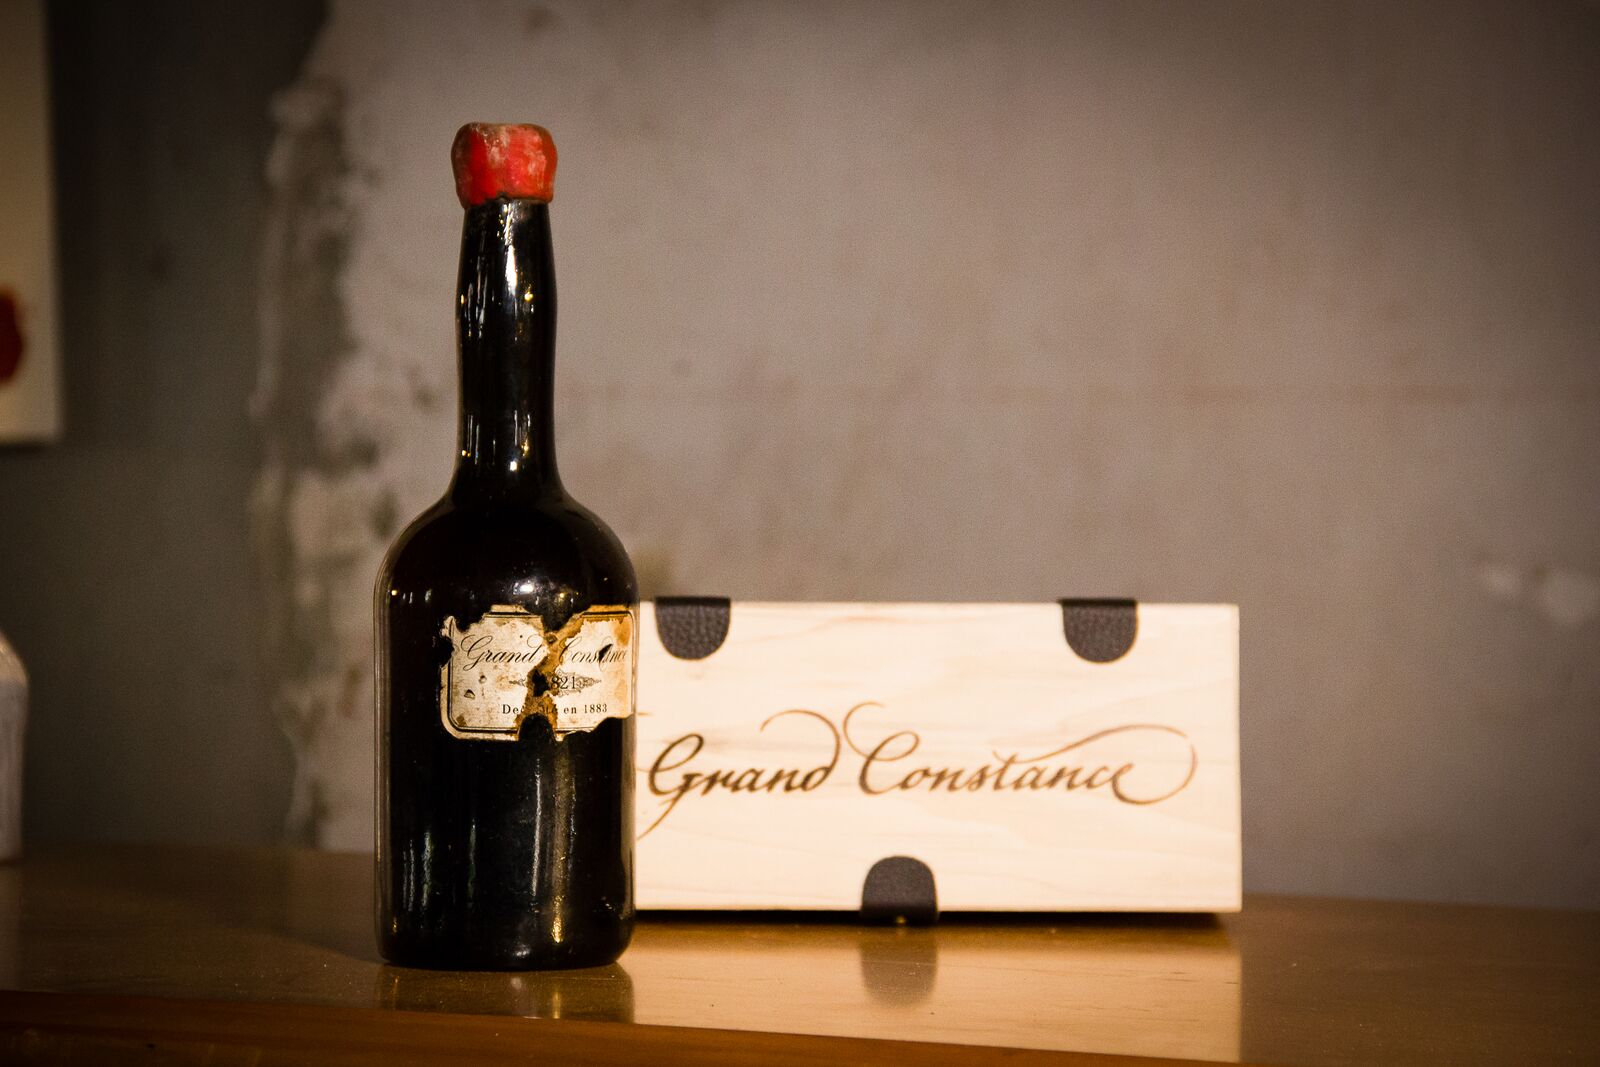 Grand Constance at Groot Constantia